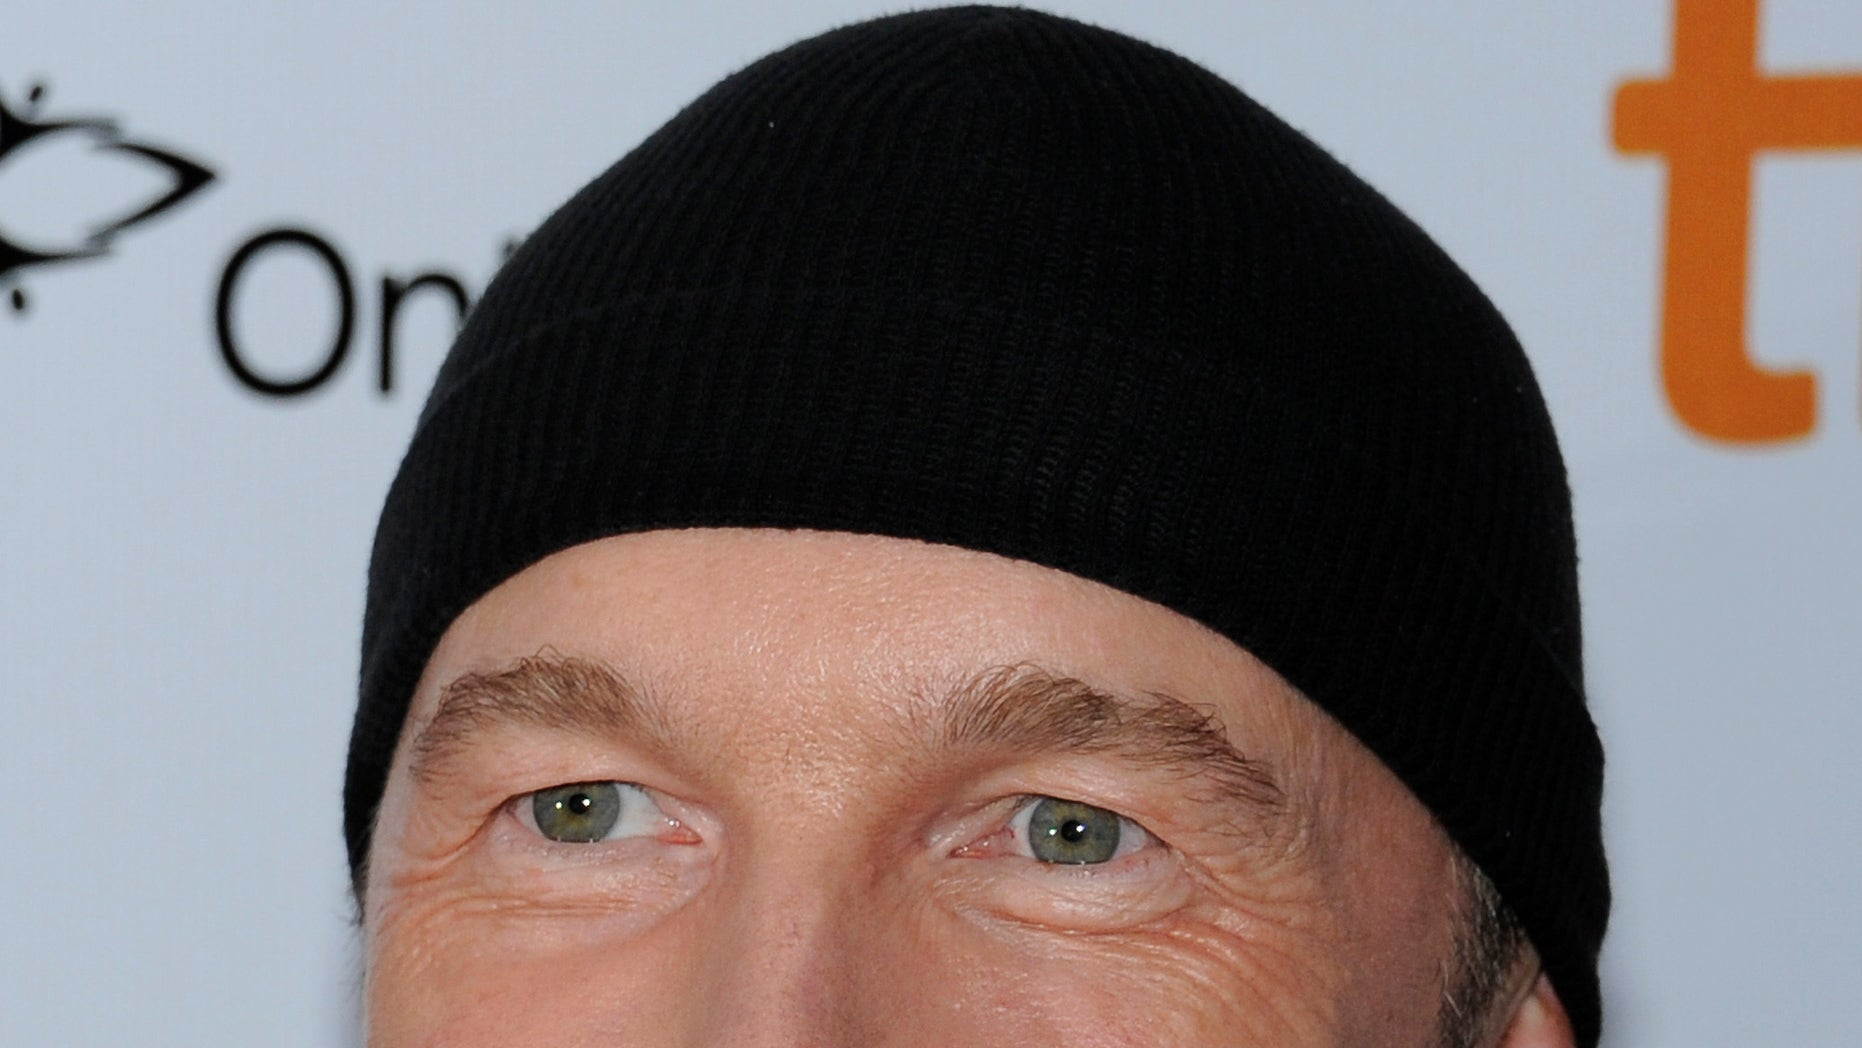 Sept. 8, 2011. U2 guitarist The Edge, whose given name is David Evans. The California Coastal Commission staff has agreed to allow Evans to build a scaled-down compound in the mountains above Malibu. The staff recommended Friday, Sept. 19, 2014, that the commission approve a smaller development than the one originally envisioned.